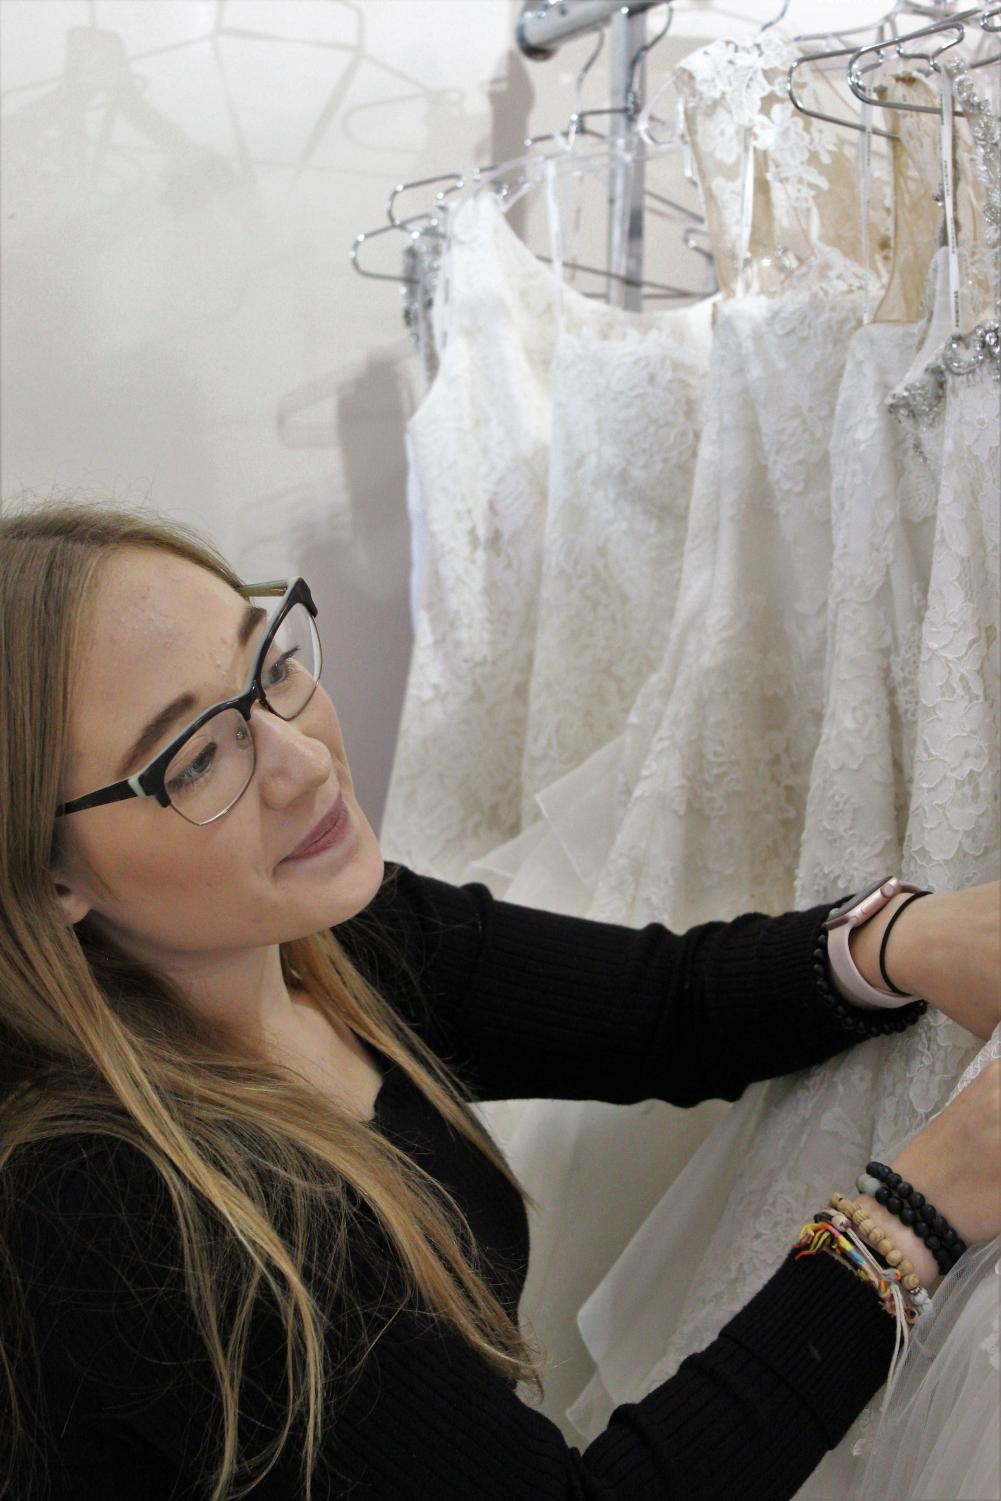 In the little botique of Spotlight Formal Wear lies an array of dresses. Here senior Elizabeth Sook searches the racks, hoping to find the perfect dress for her bride, druing the consultation.